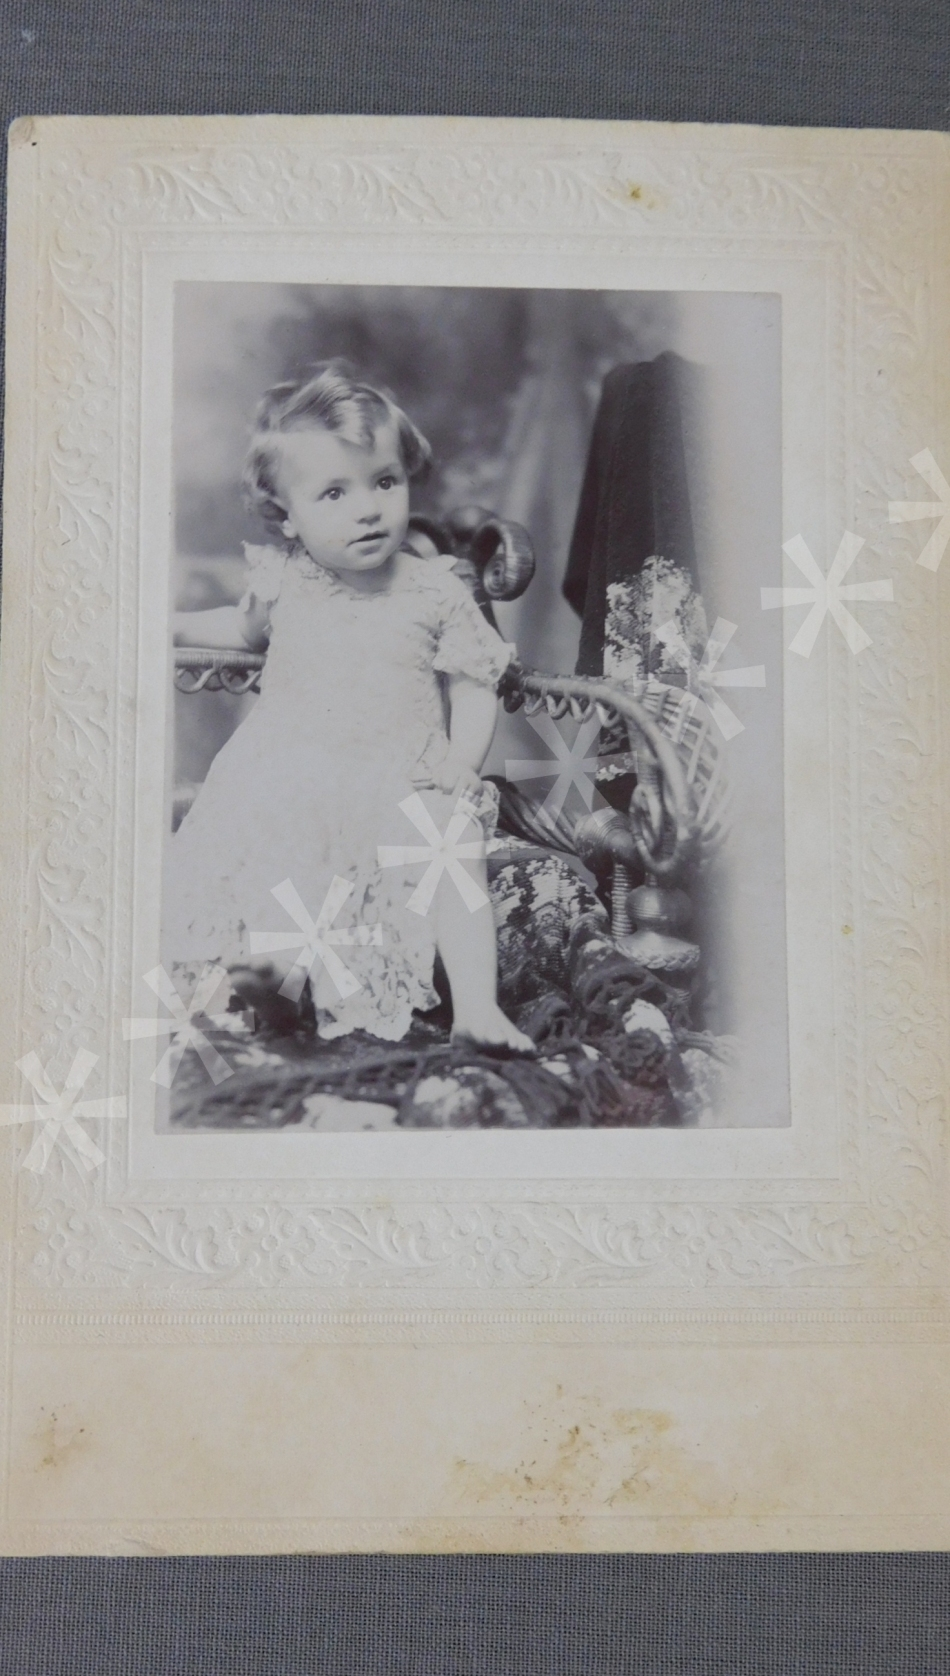 Vintage Victorian Baby Girl Cabinet Card Photo, 1800s Embossed Photograph